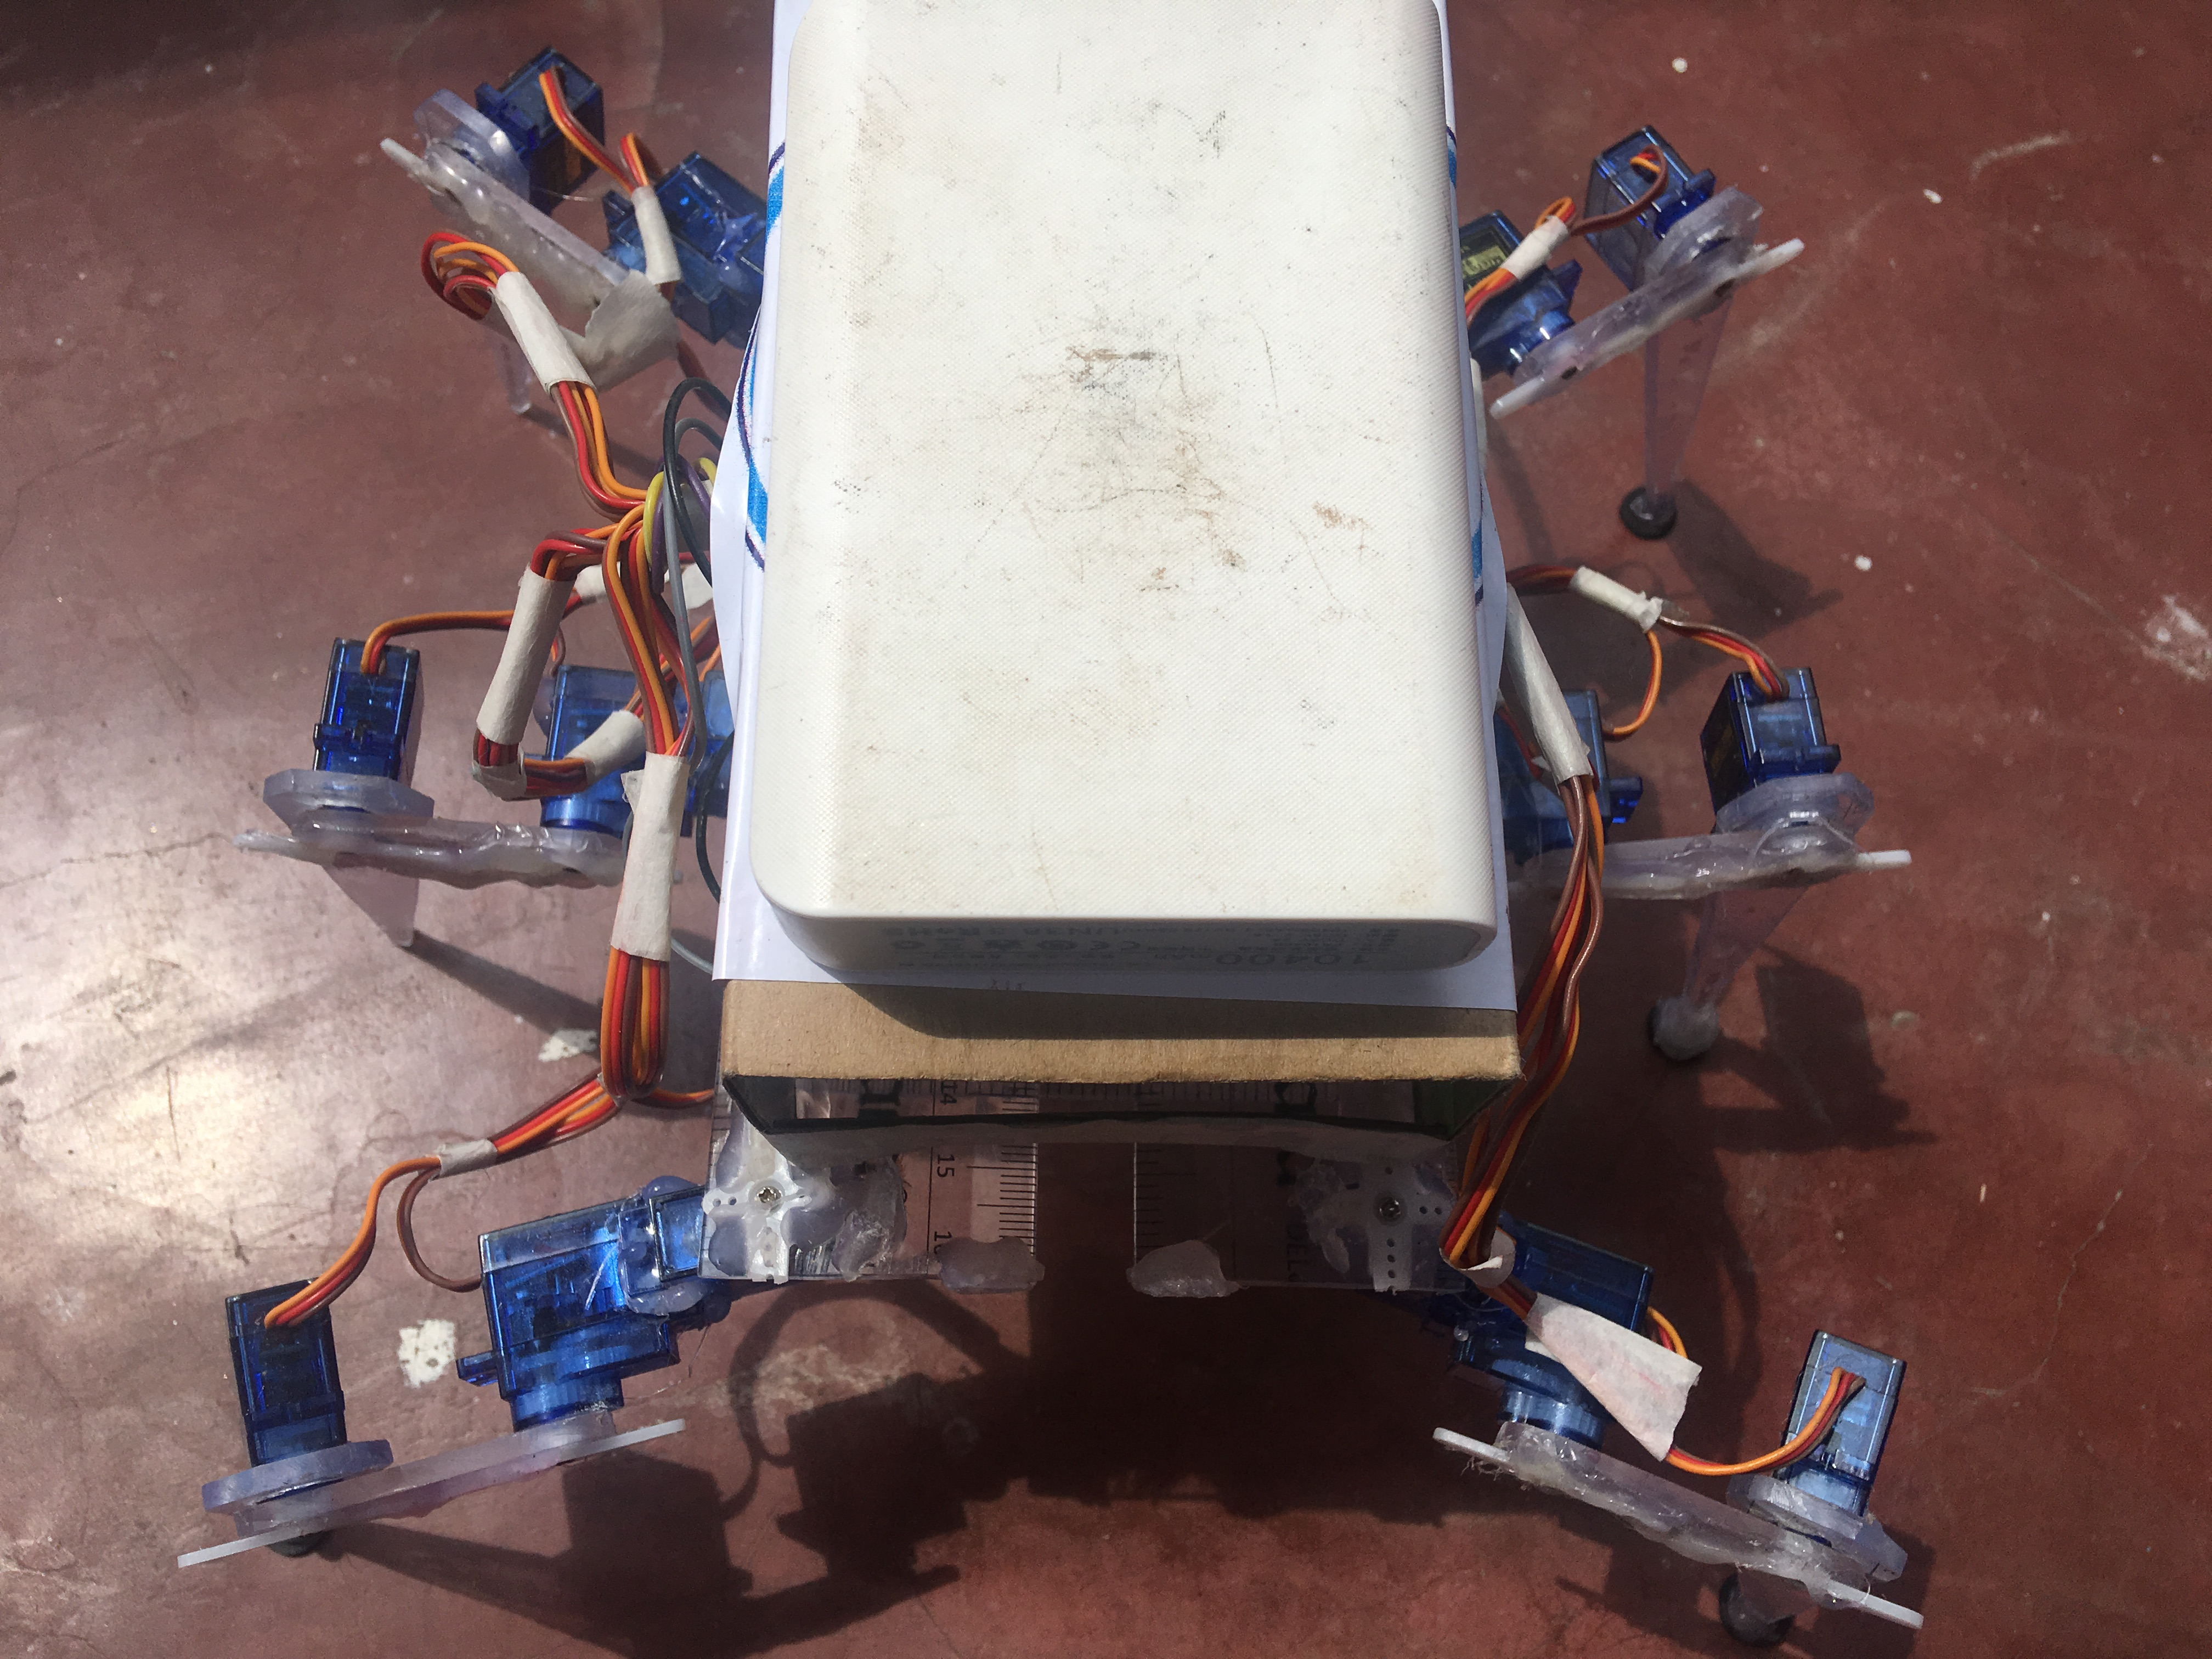 Picture of Hexapod Robot With Ruler Body Parts